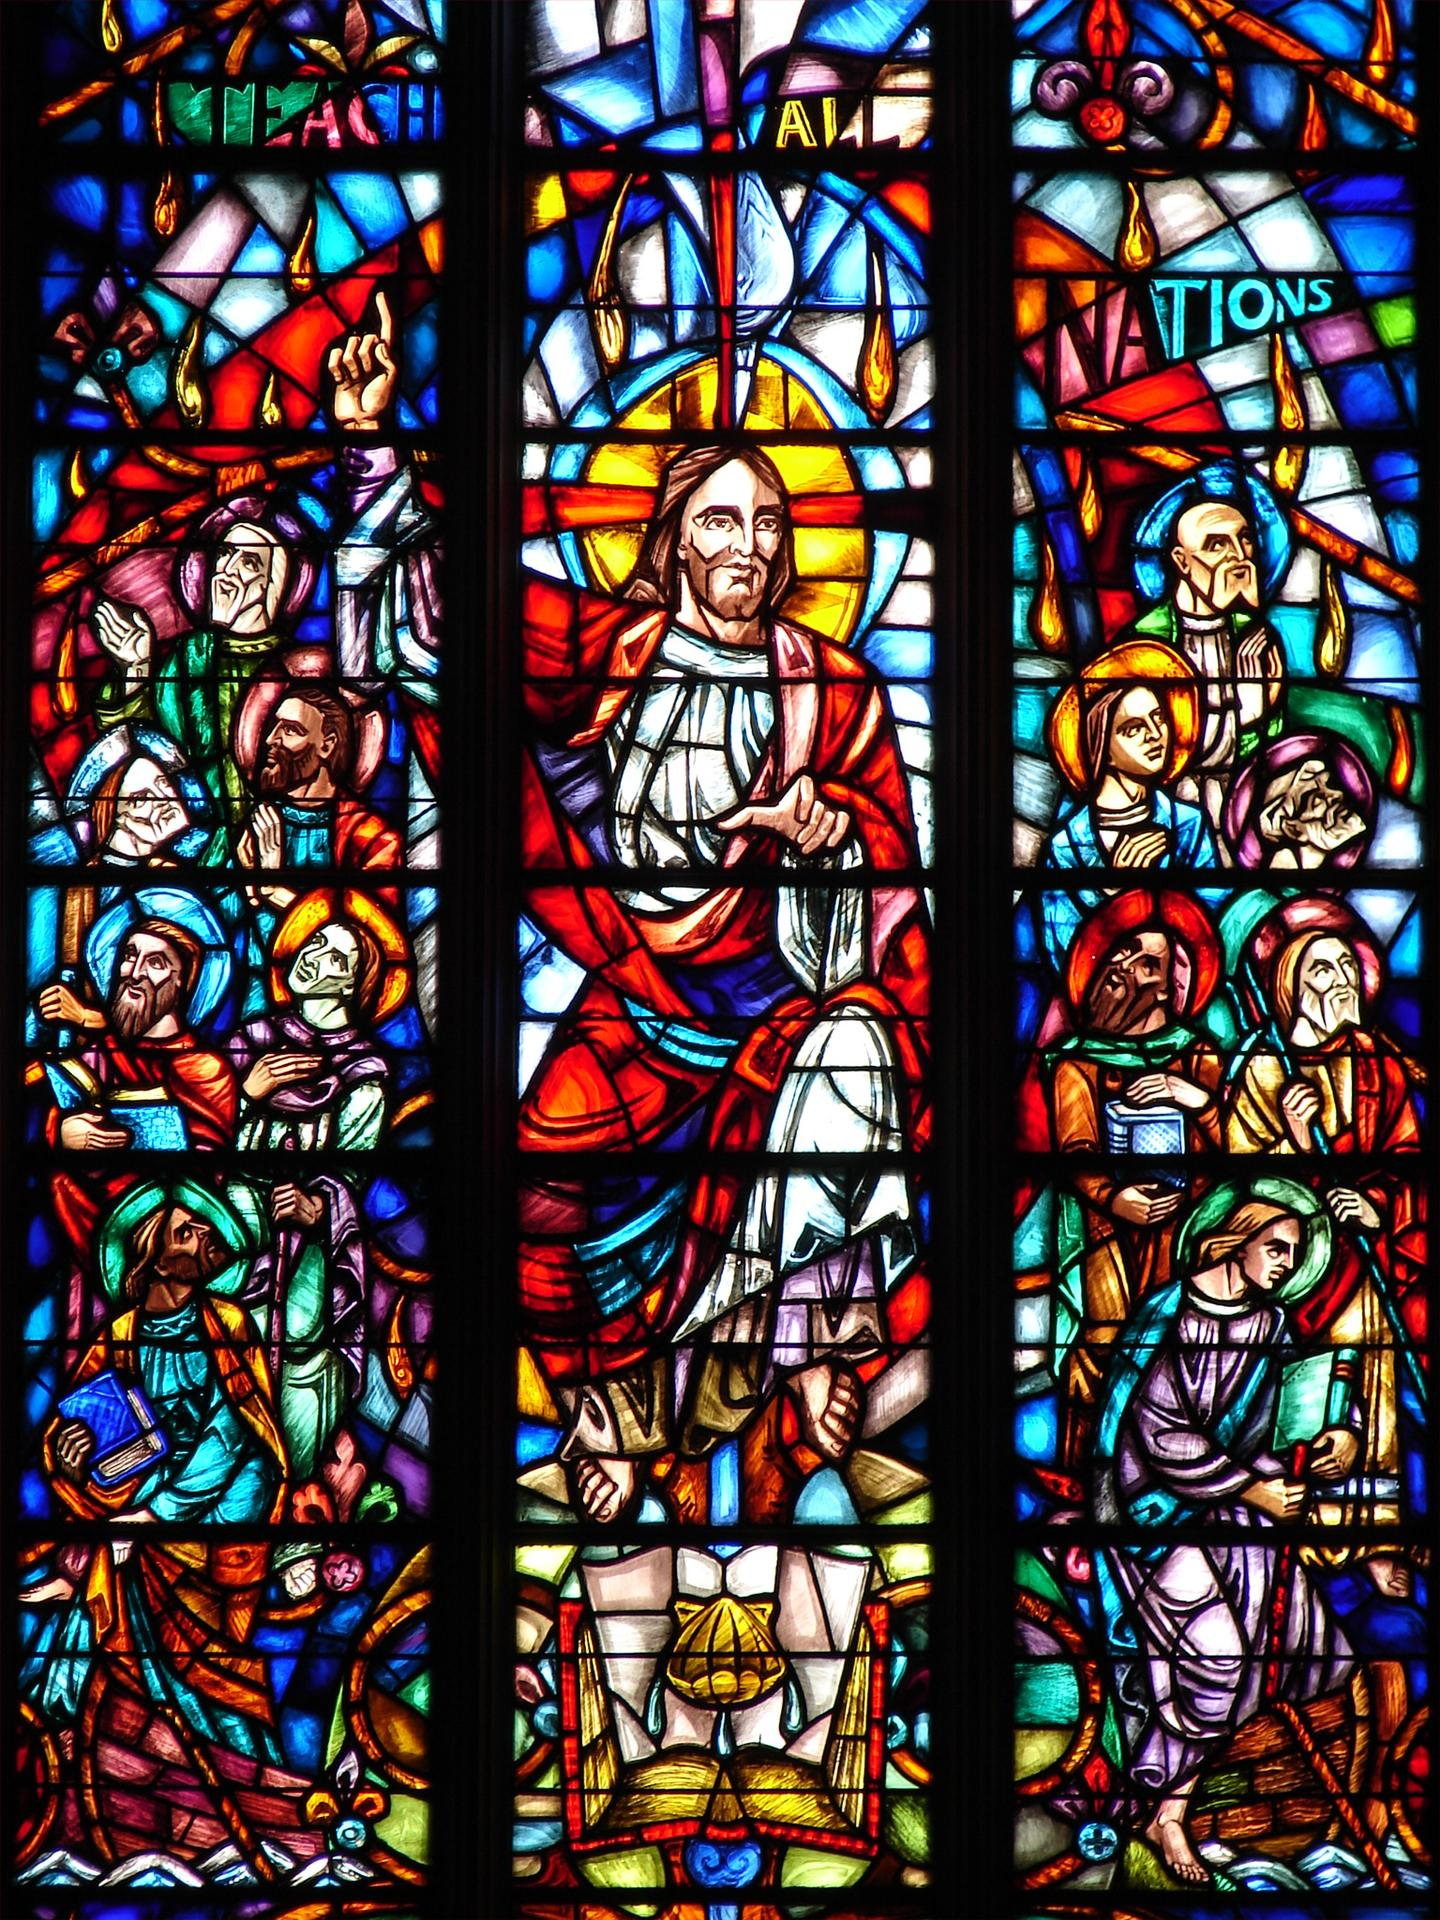 Stained Glass Windows : Stained glass windows first presbyterian church of